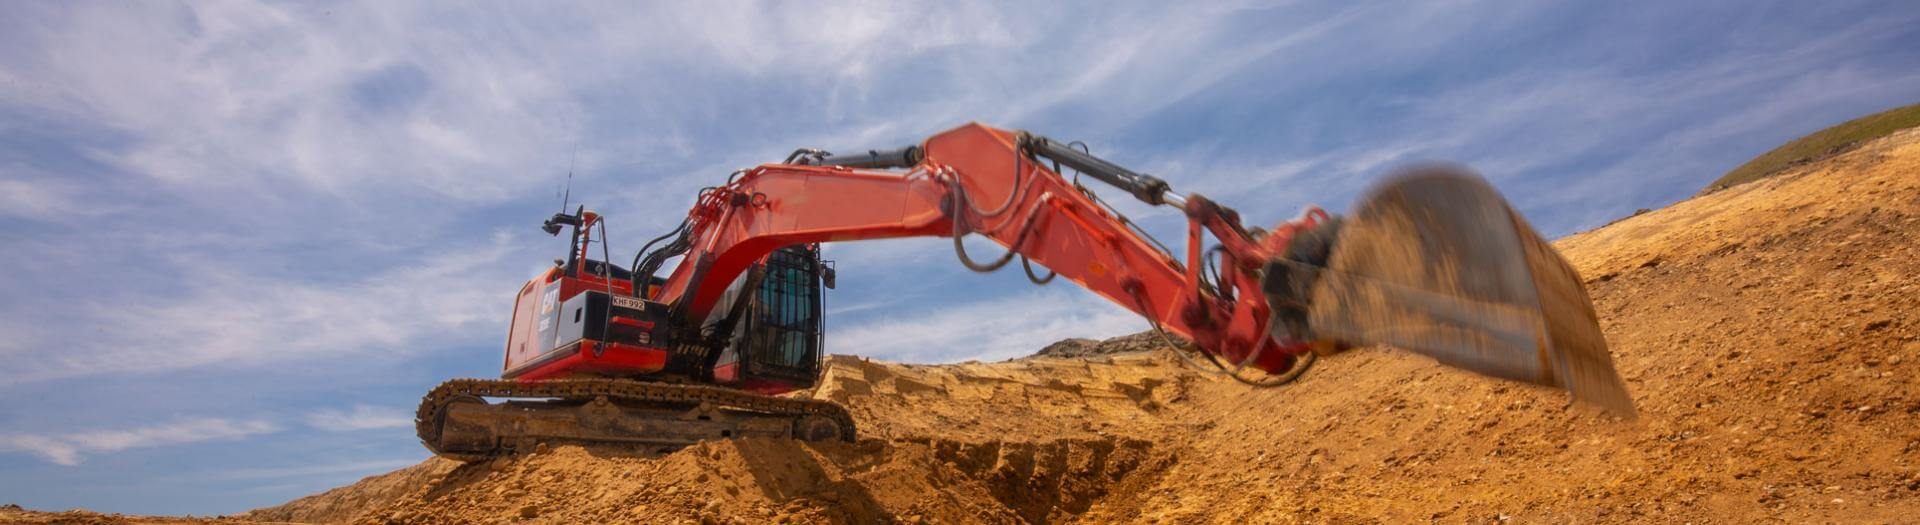 Mining and Quarry Equipment Finance